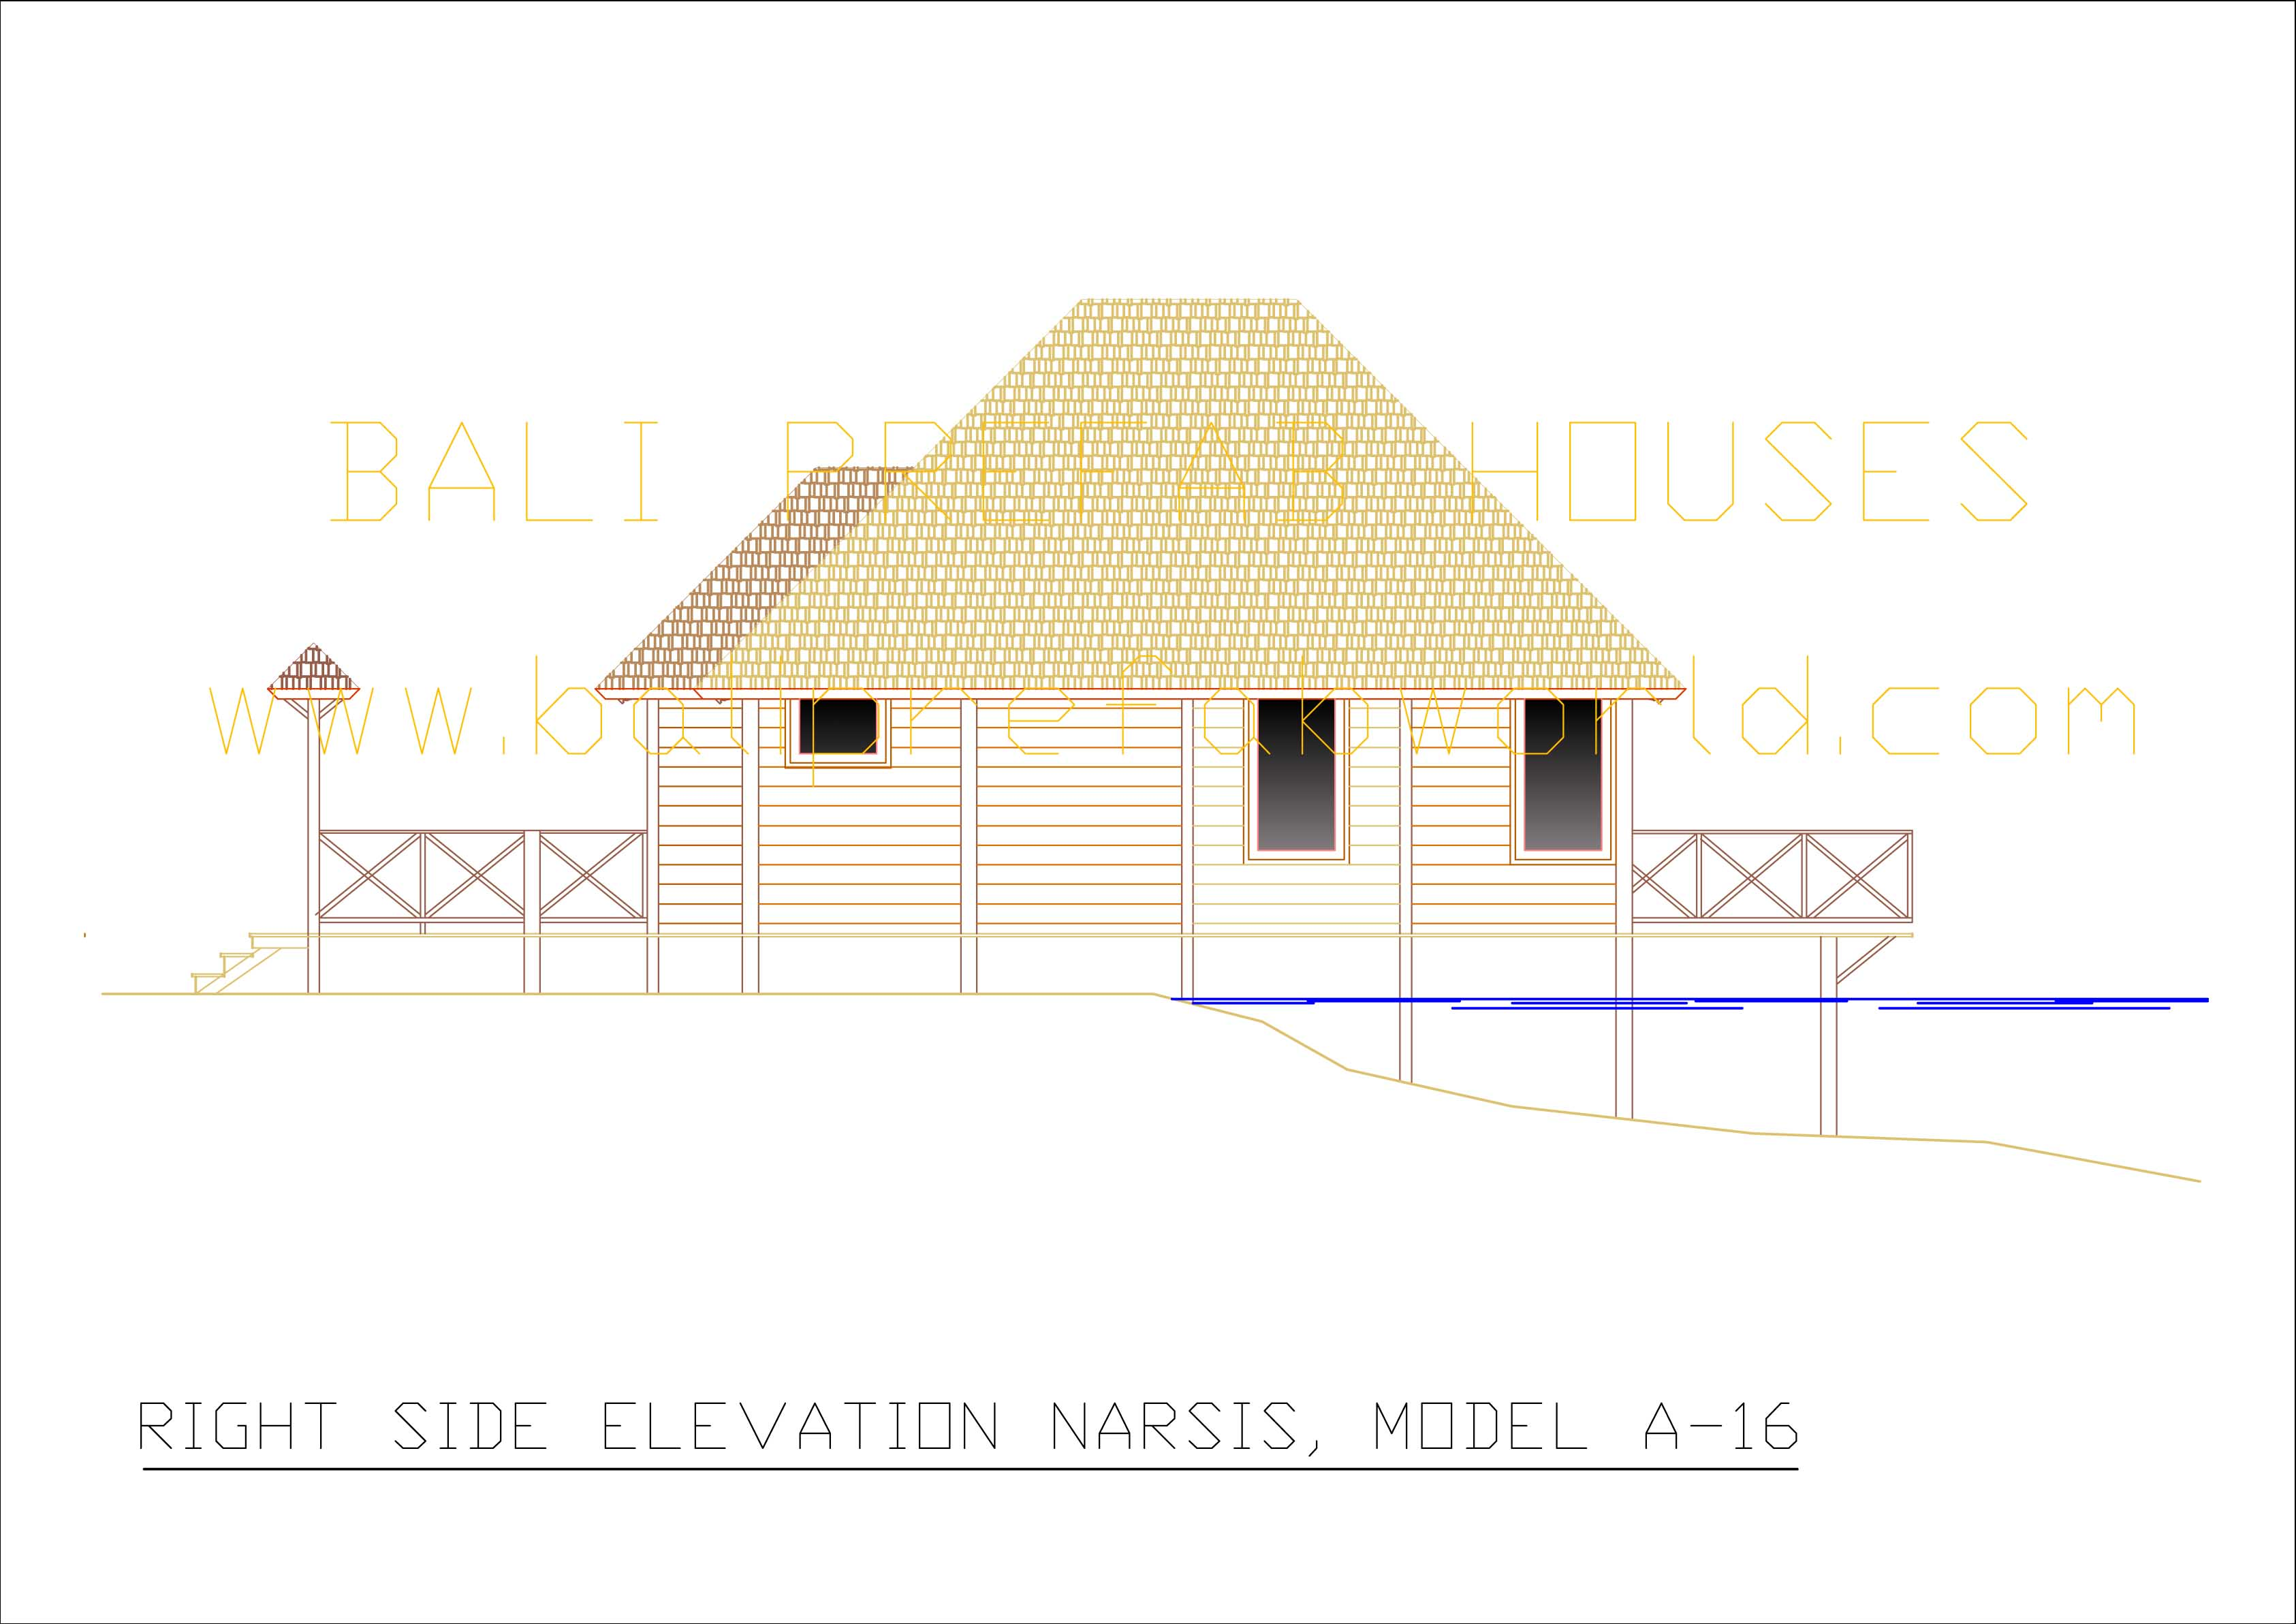 Narsis right side elevation